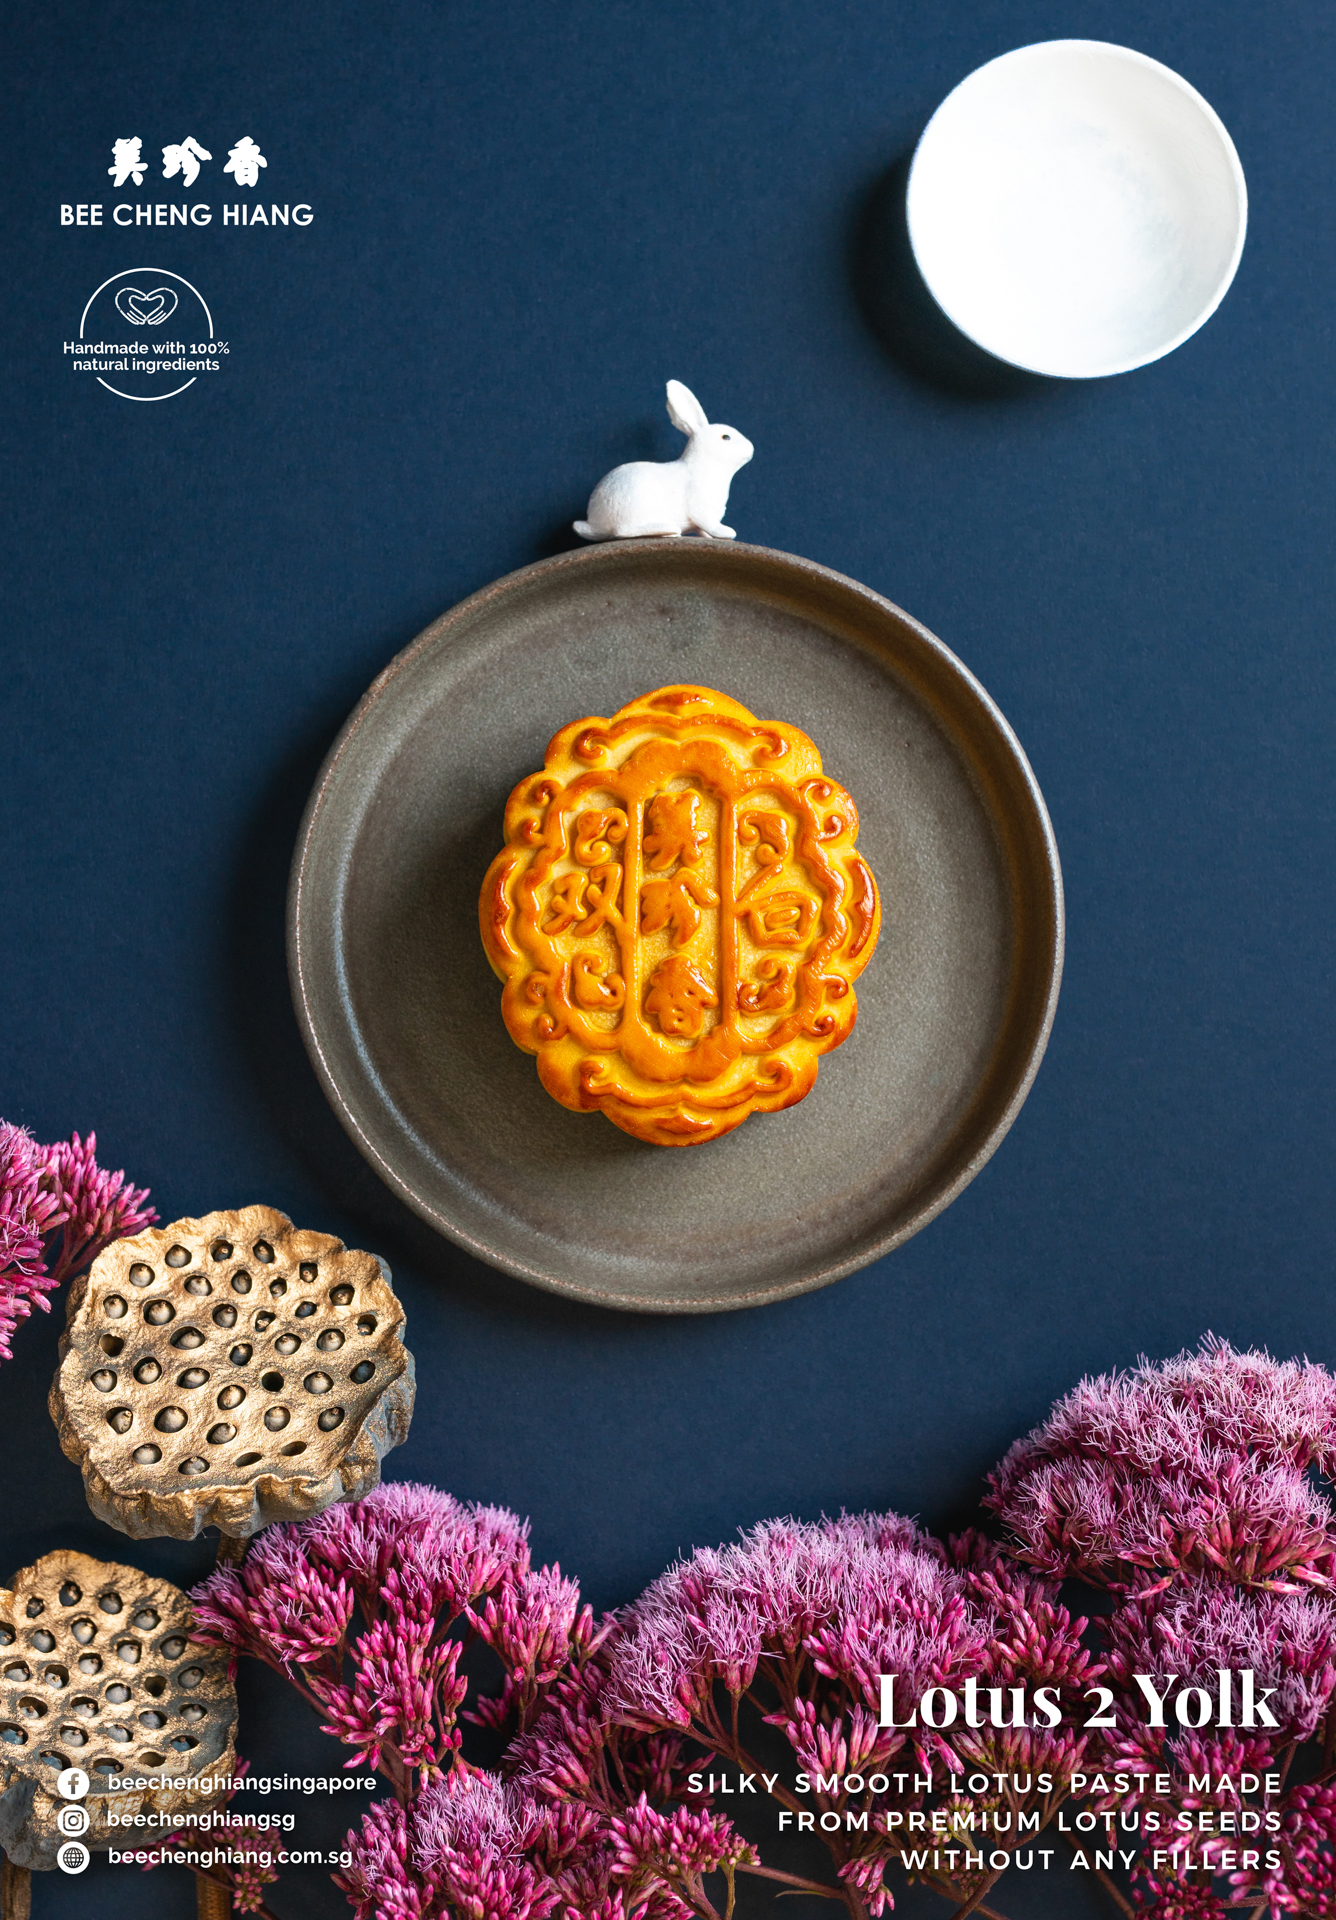 Bee Cheng Hiang Singapore - Food Photography & Food Styling by Alinea Collective Pte Ltd.